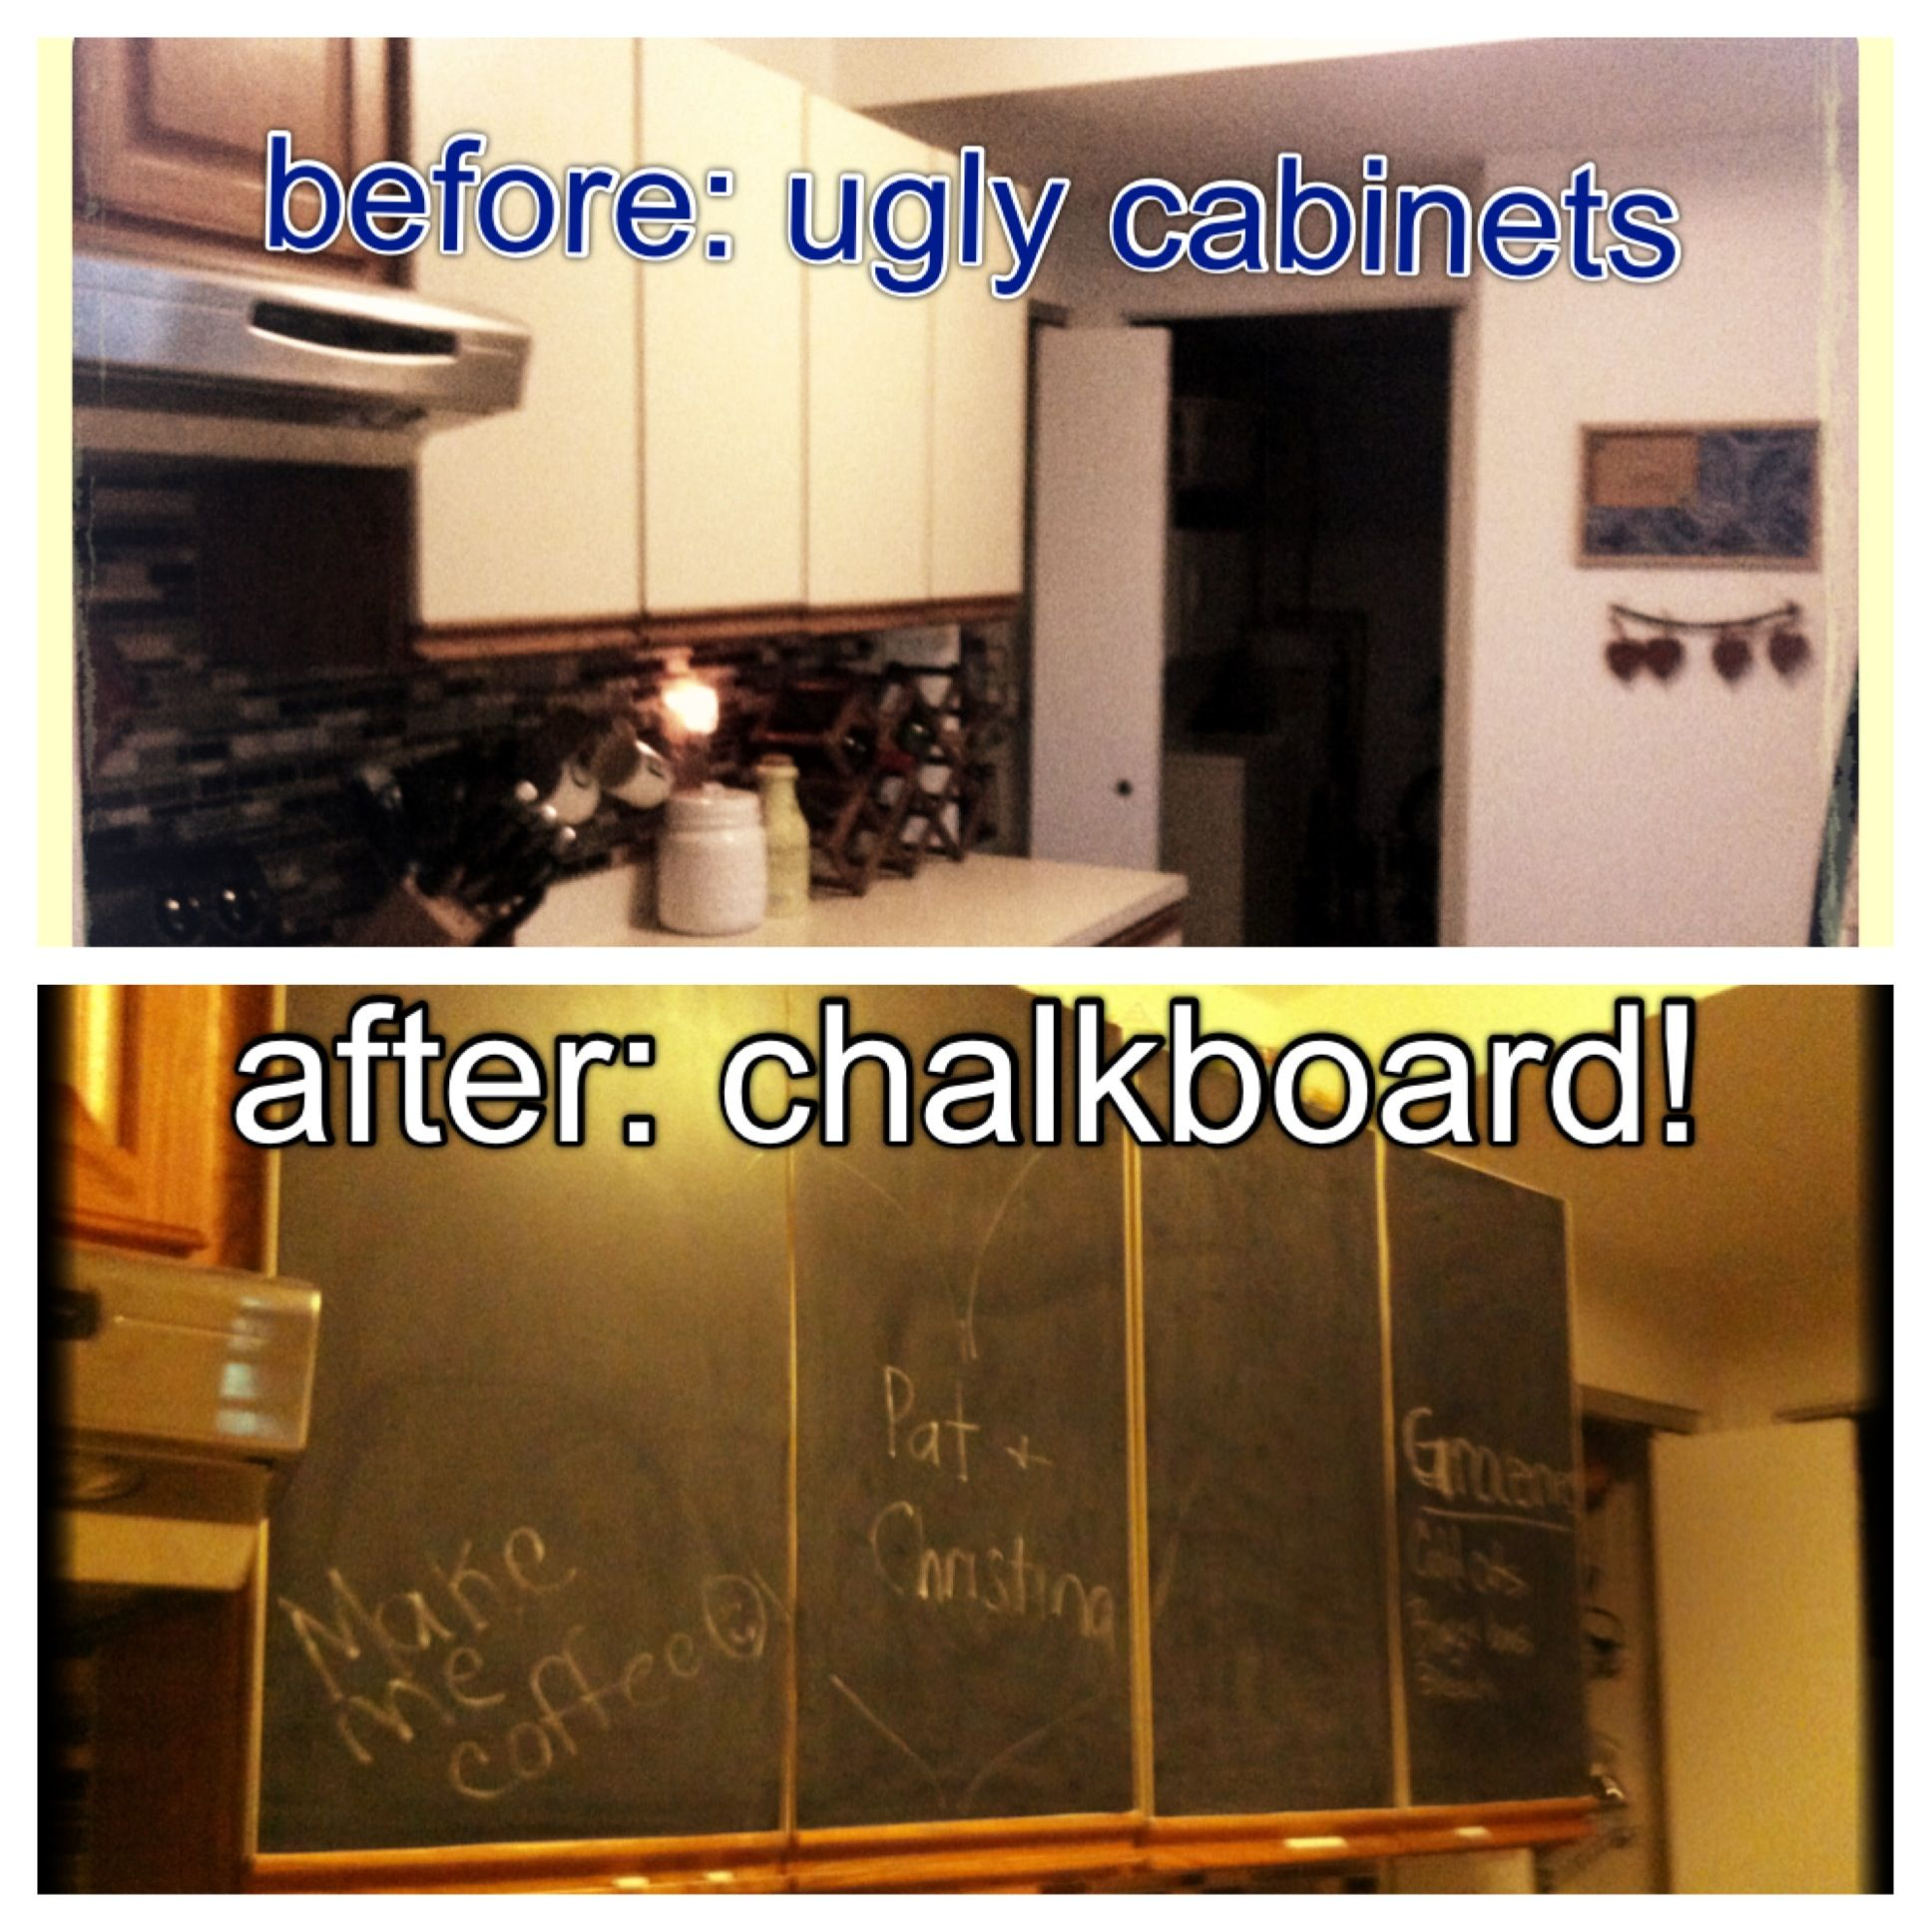 Redid my kitchen cabinets on $15 of chalkboard contact paper